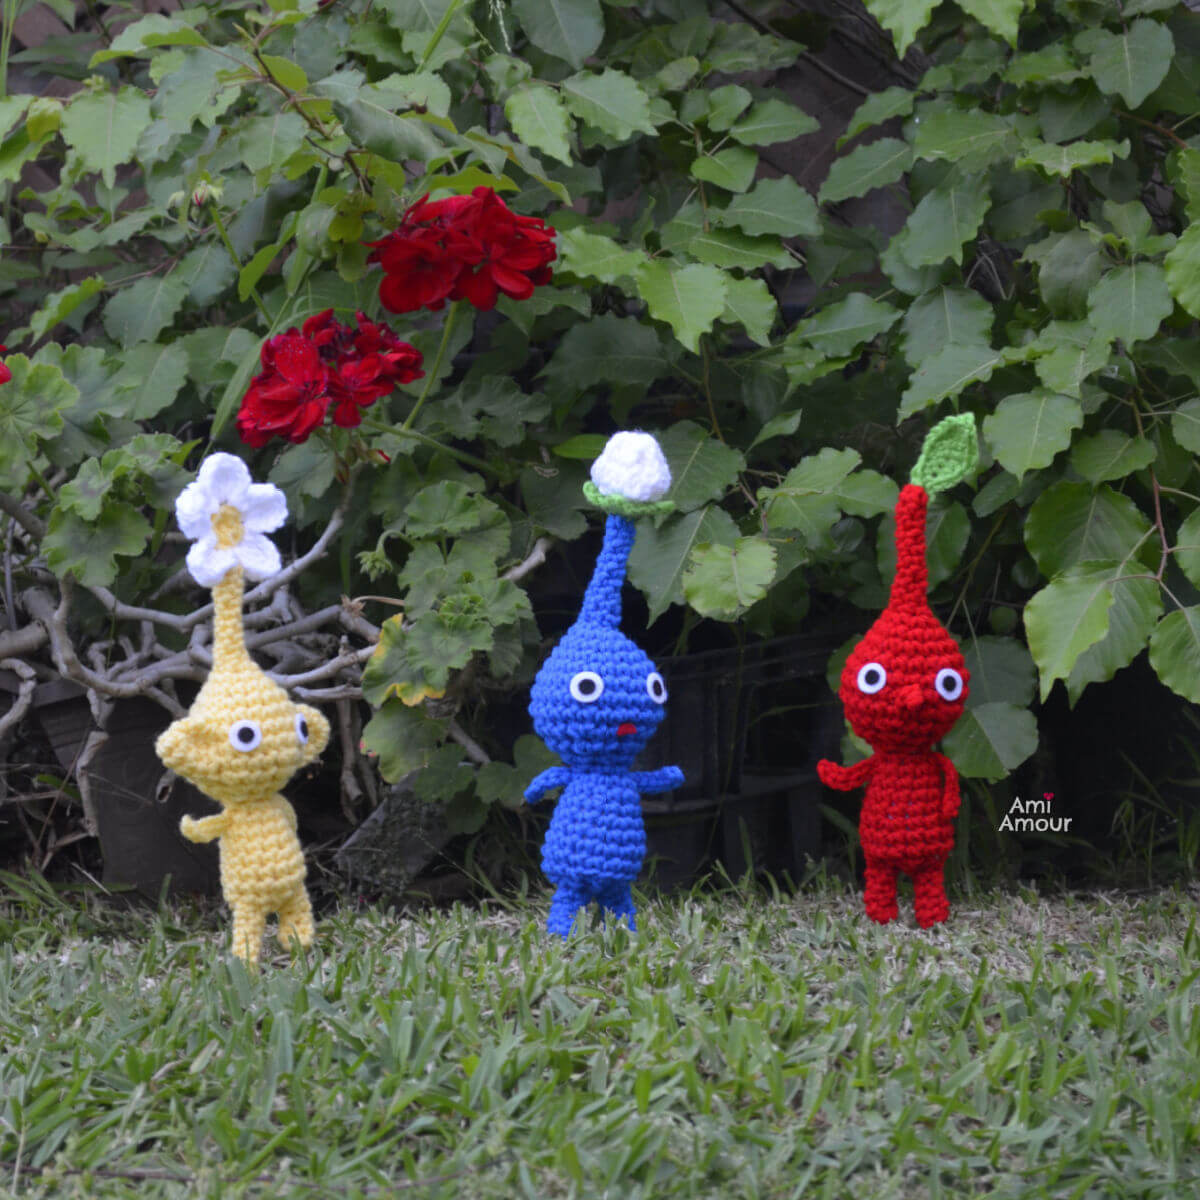 Pikmin in the Wild